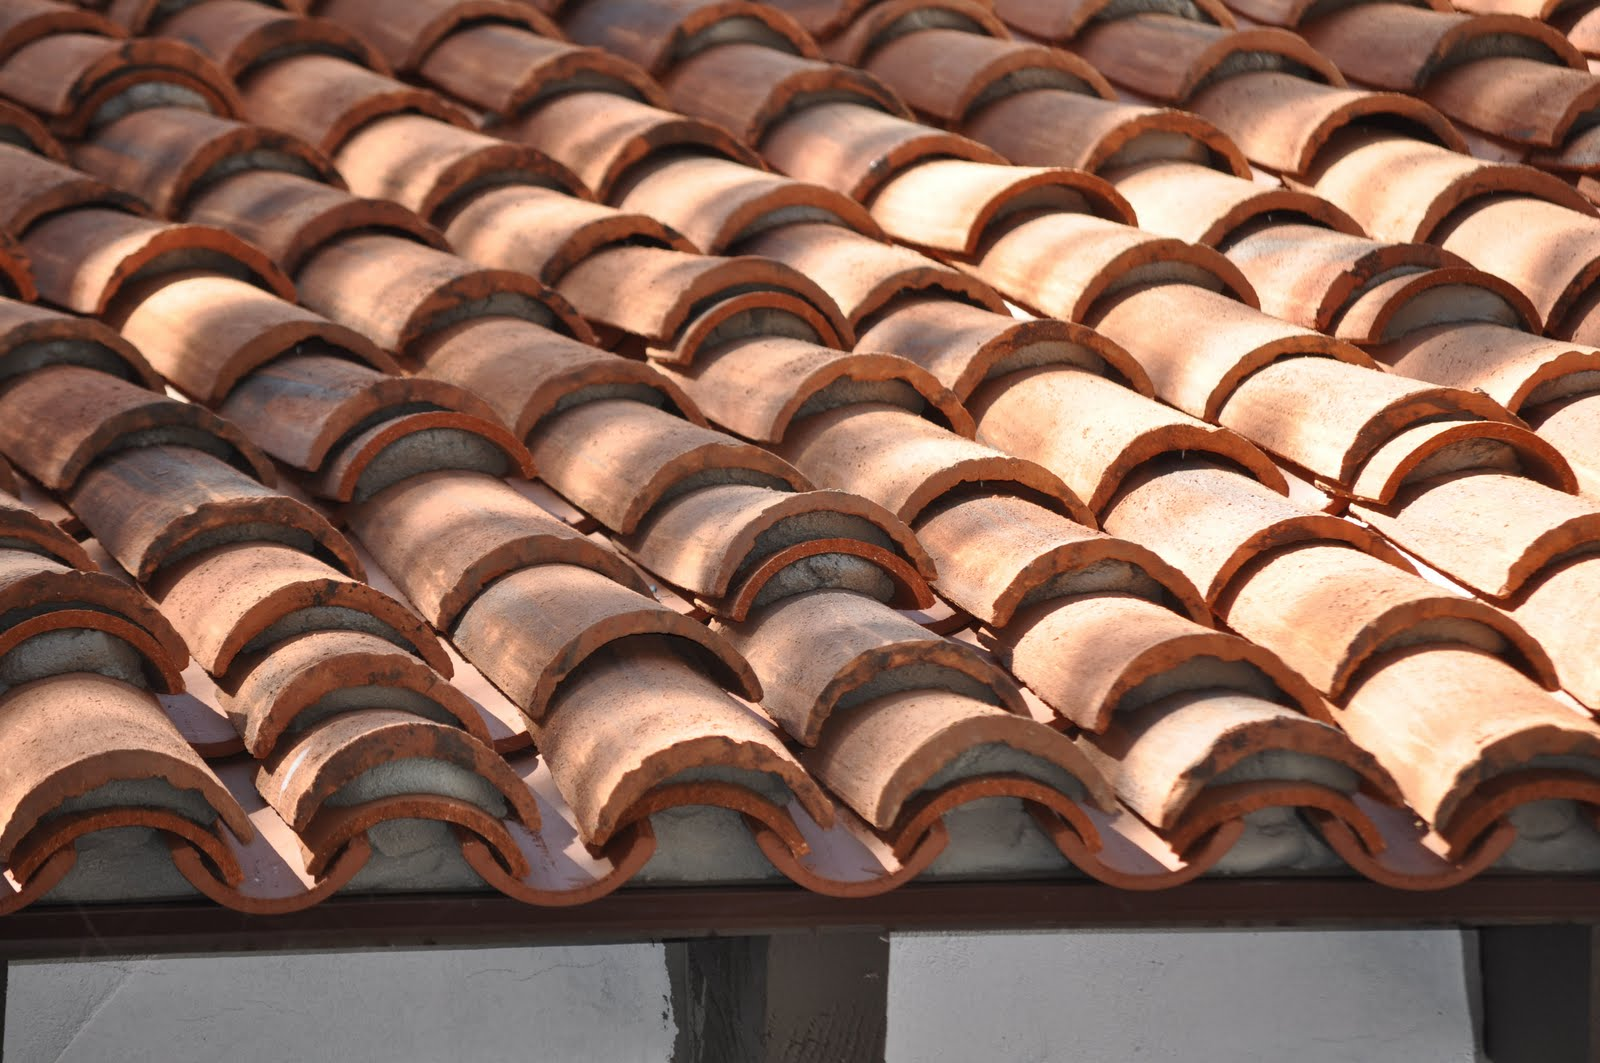 Casa di costa roofing tiles for Spanish clay tile roof